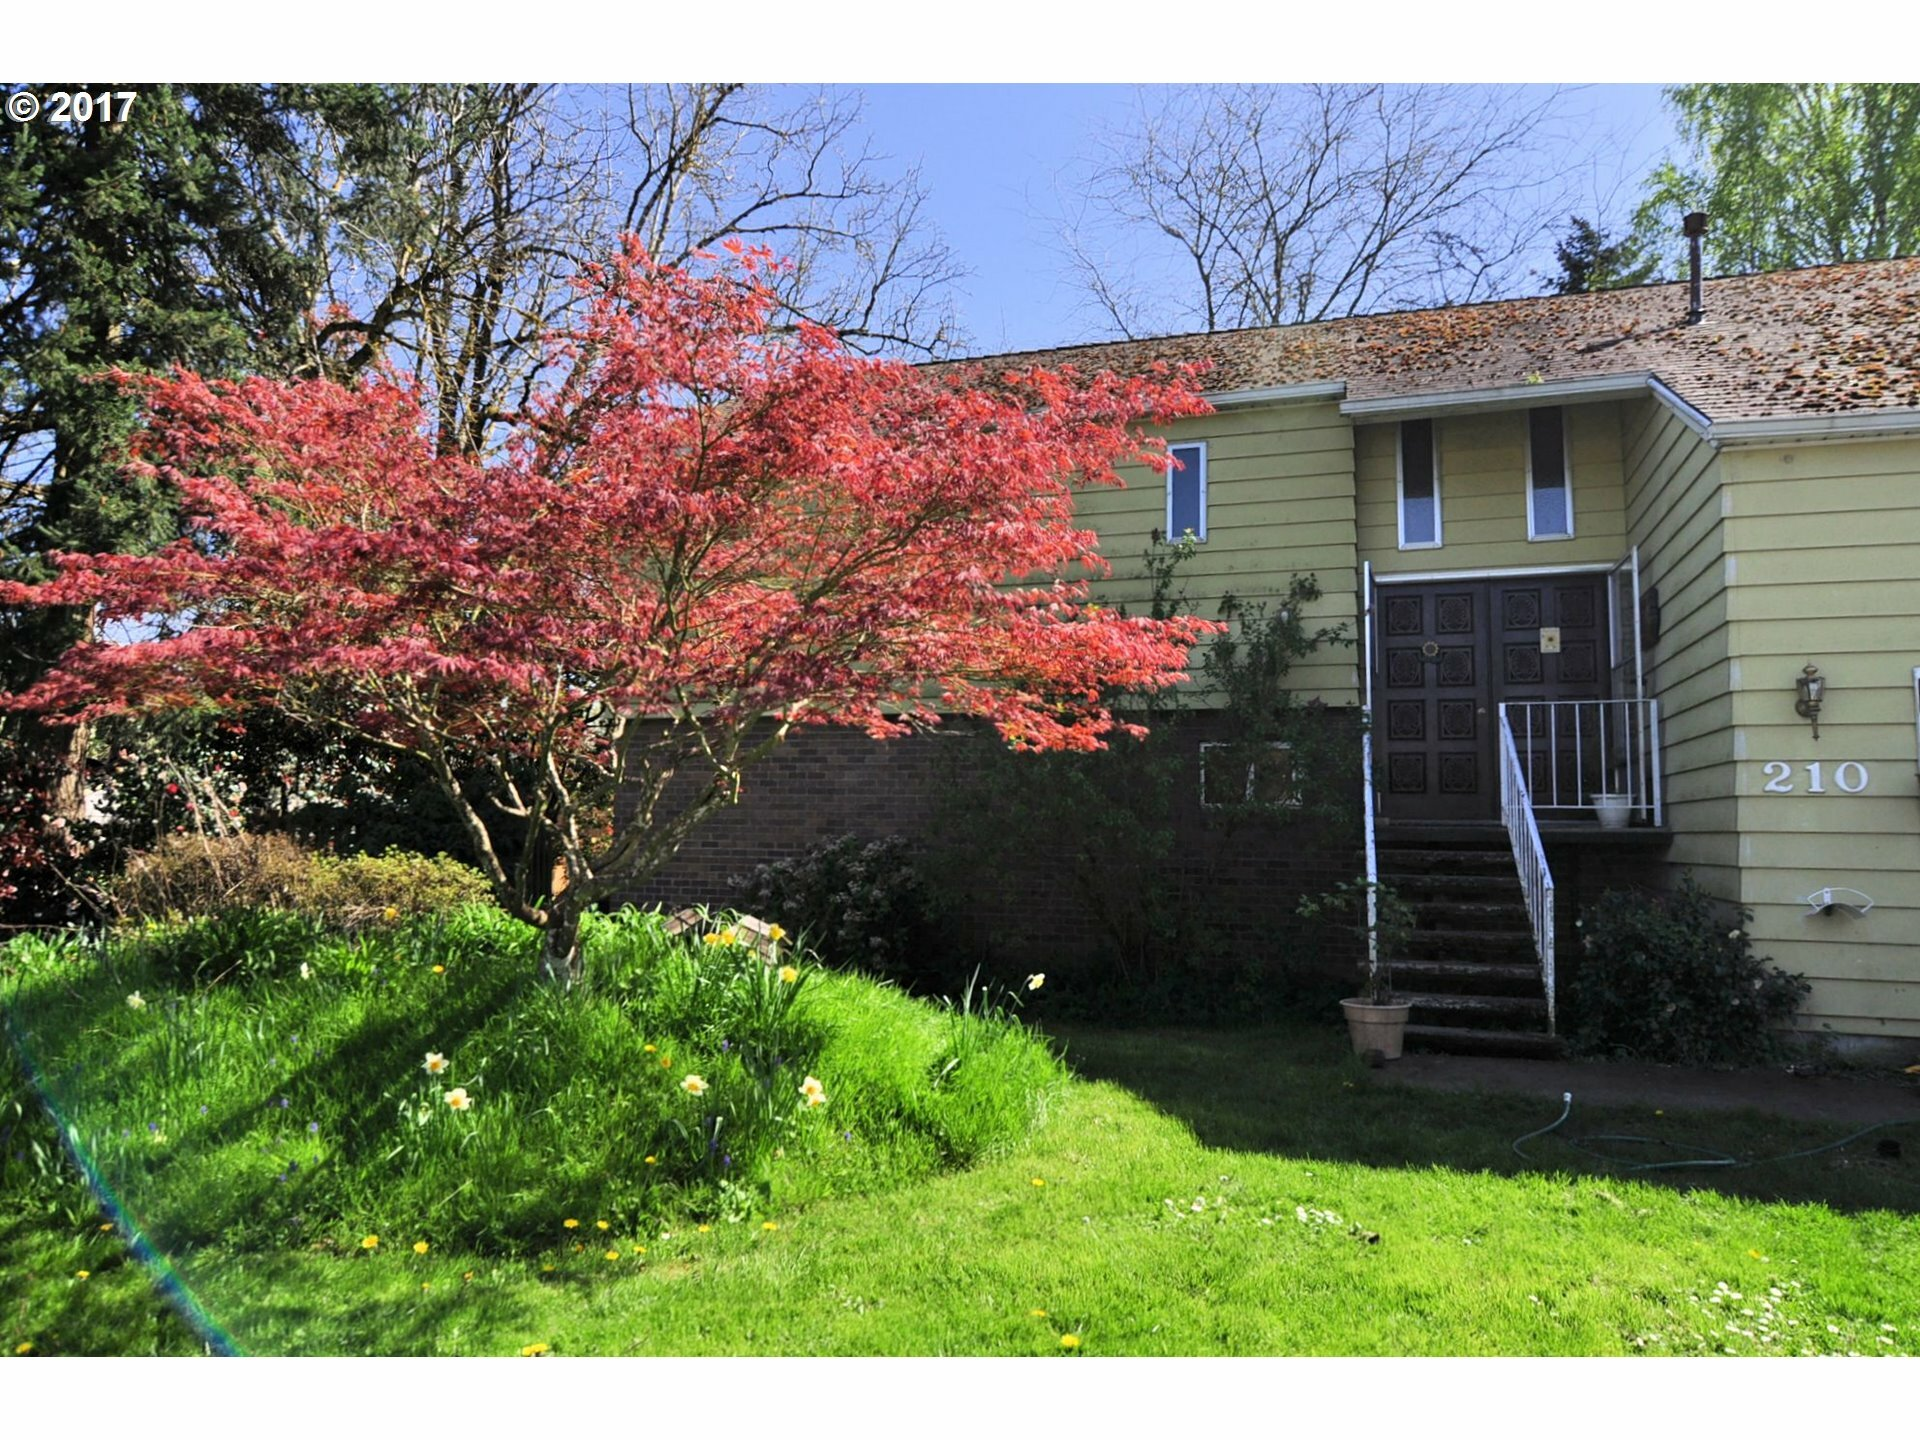 210 Tanglewood Dr, Jefferson, OR - USA (photo 1)